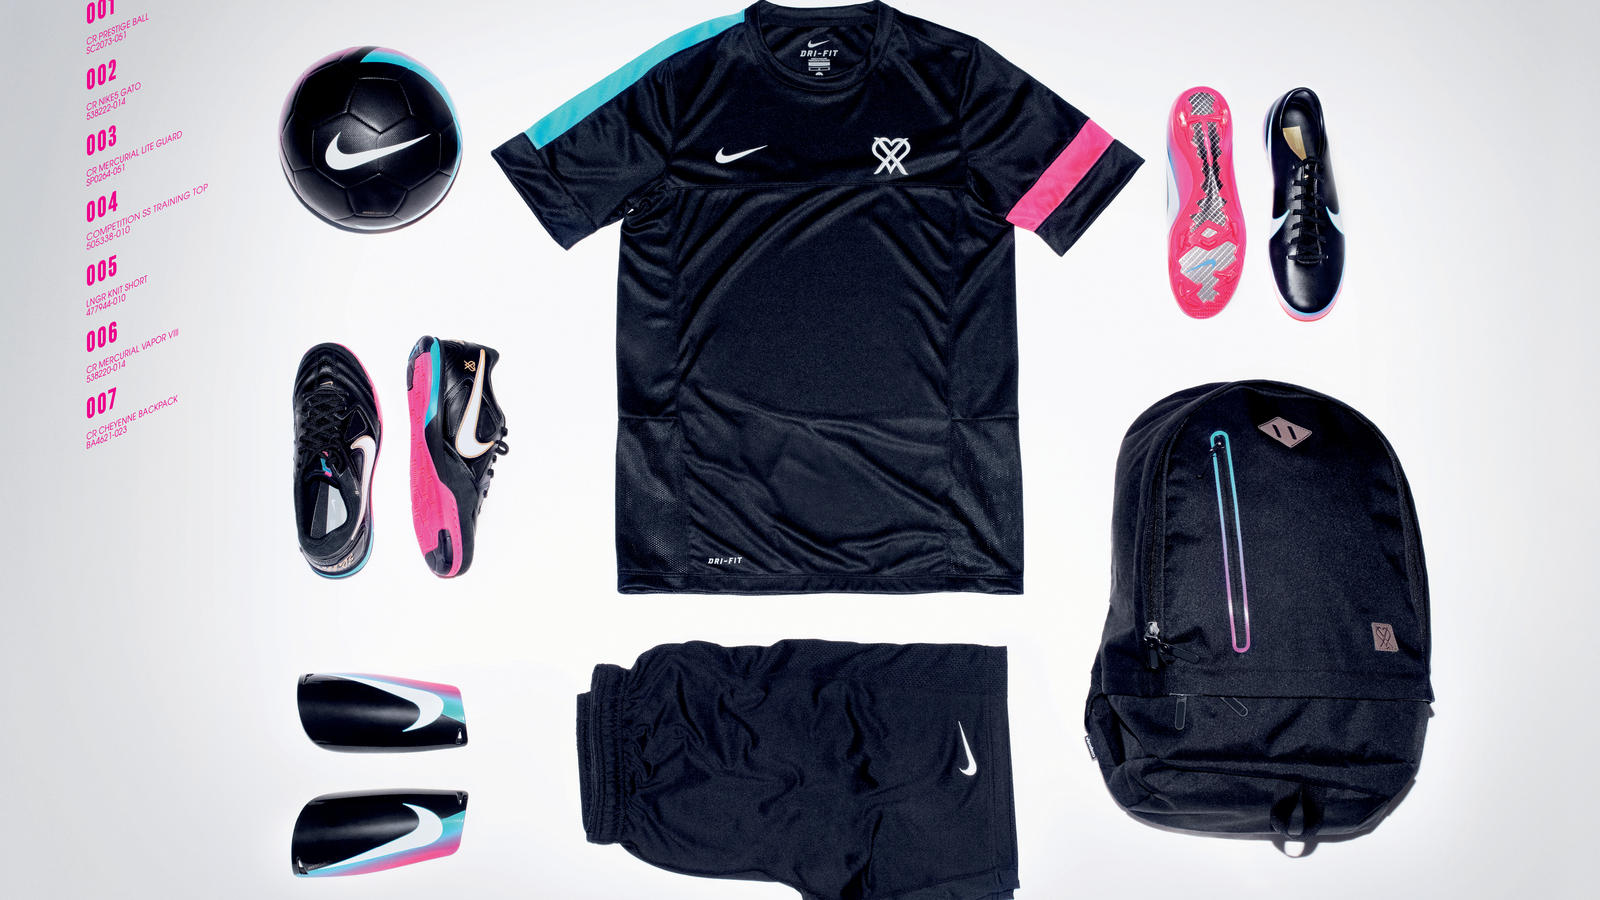 online store f9a68 c67ca Nike's CR7 collection reflects attitude and irreverence of a ...